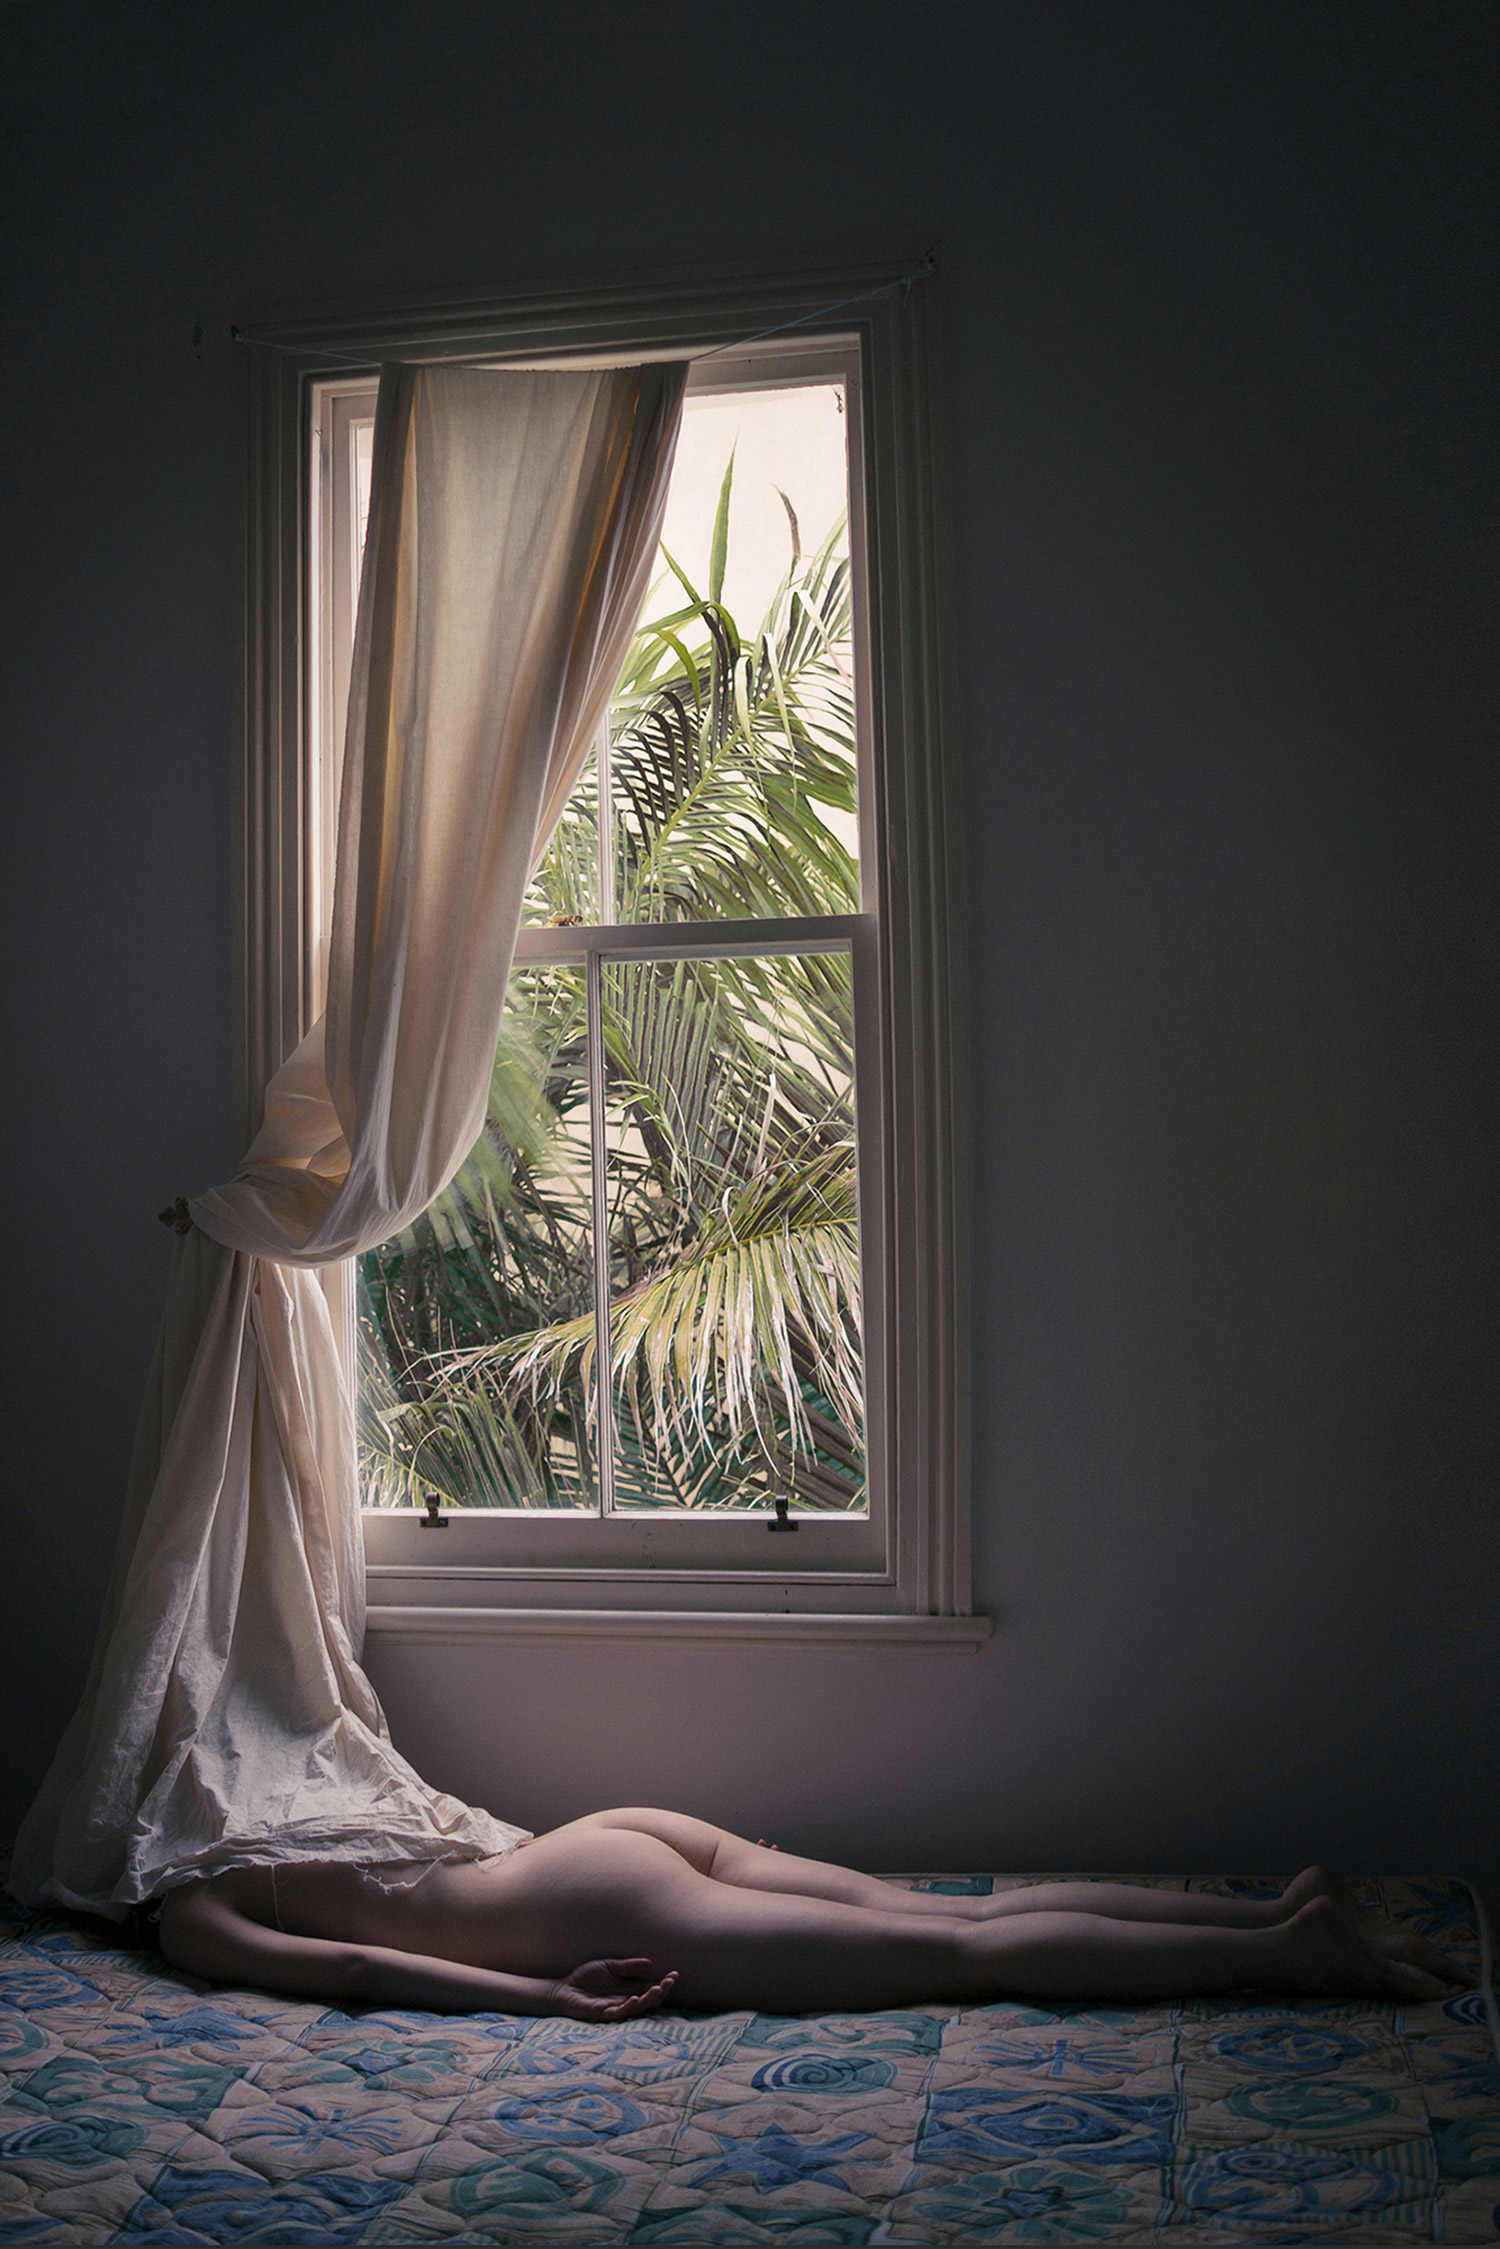 Brooke DiDonato, Quiet Places - by window